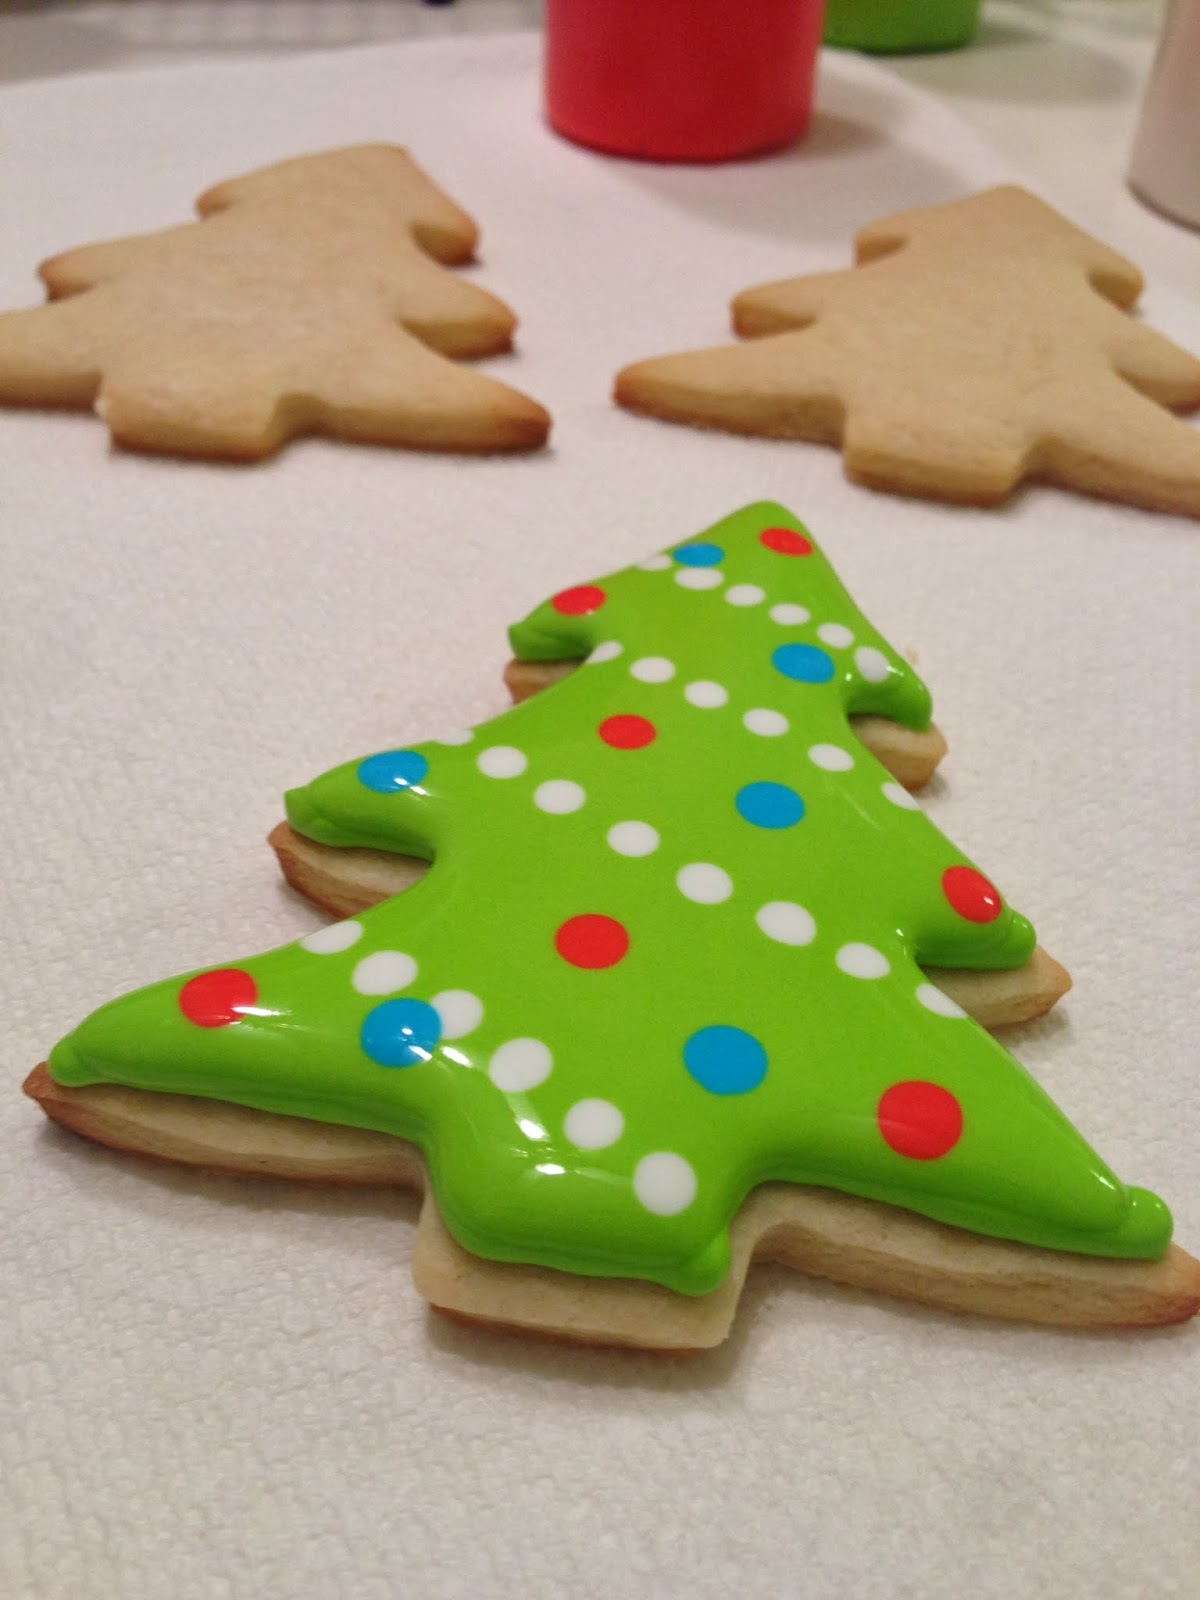 monograms & cake: Christmas Cut-Out Sugar Cookies with Royal Icing